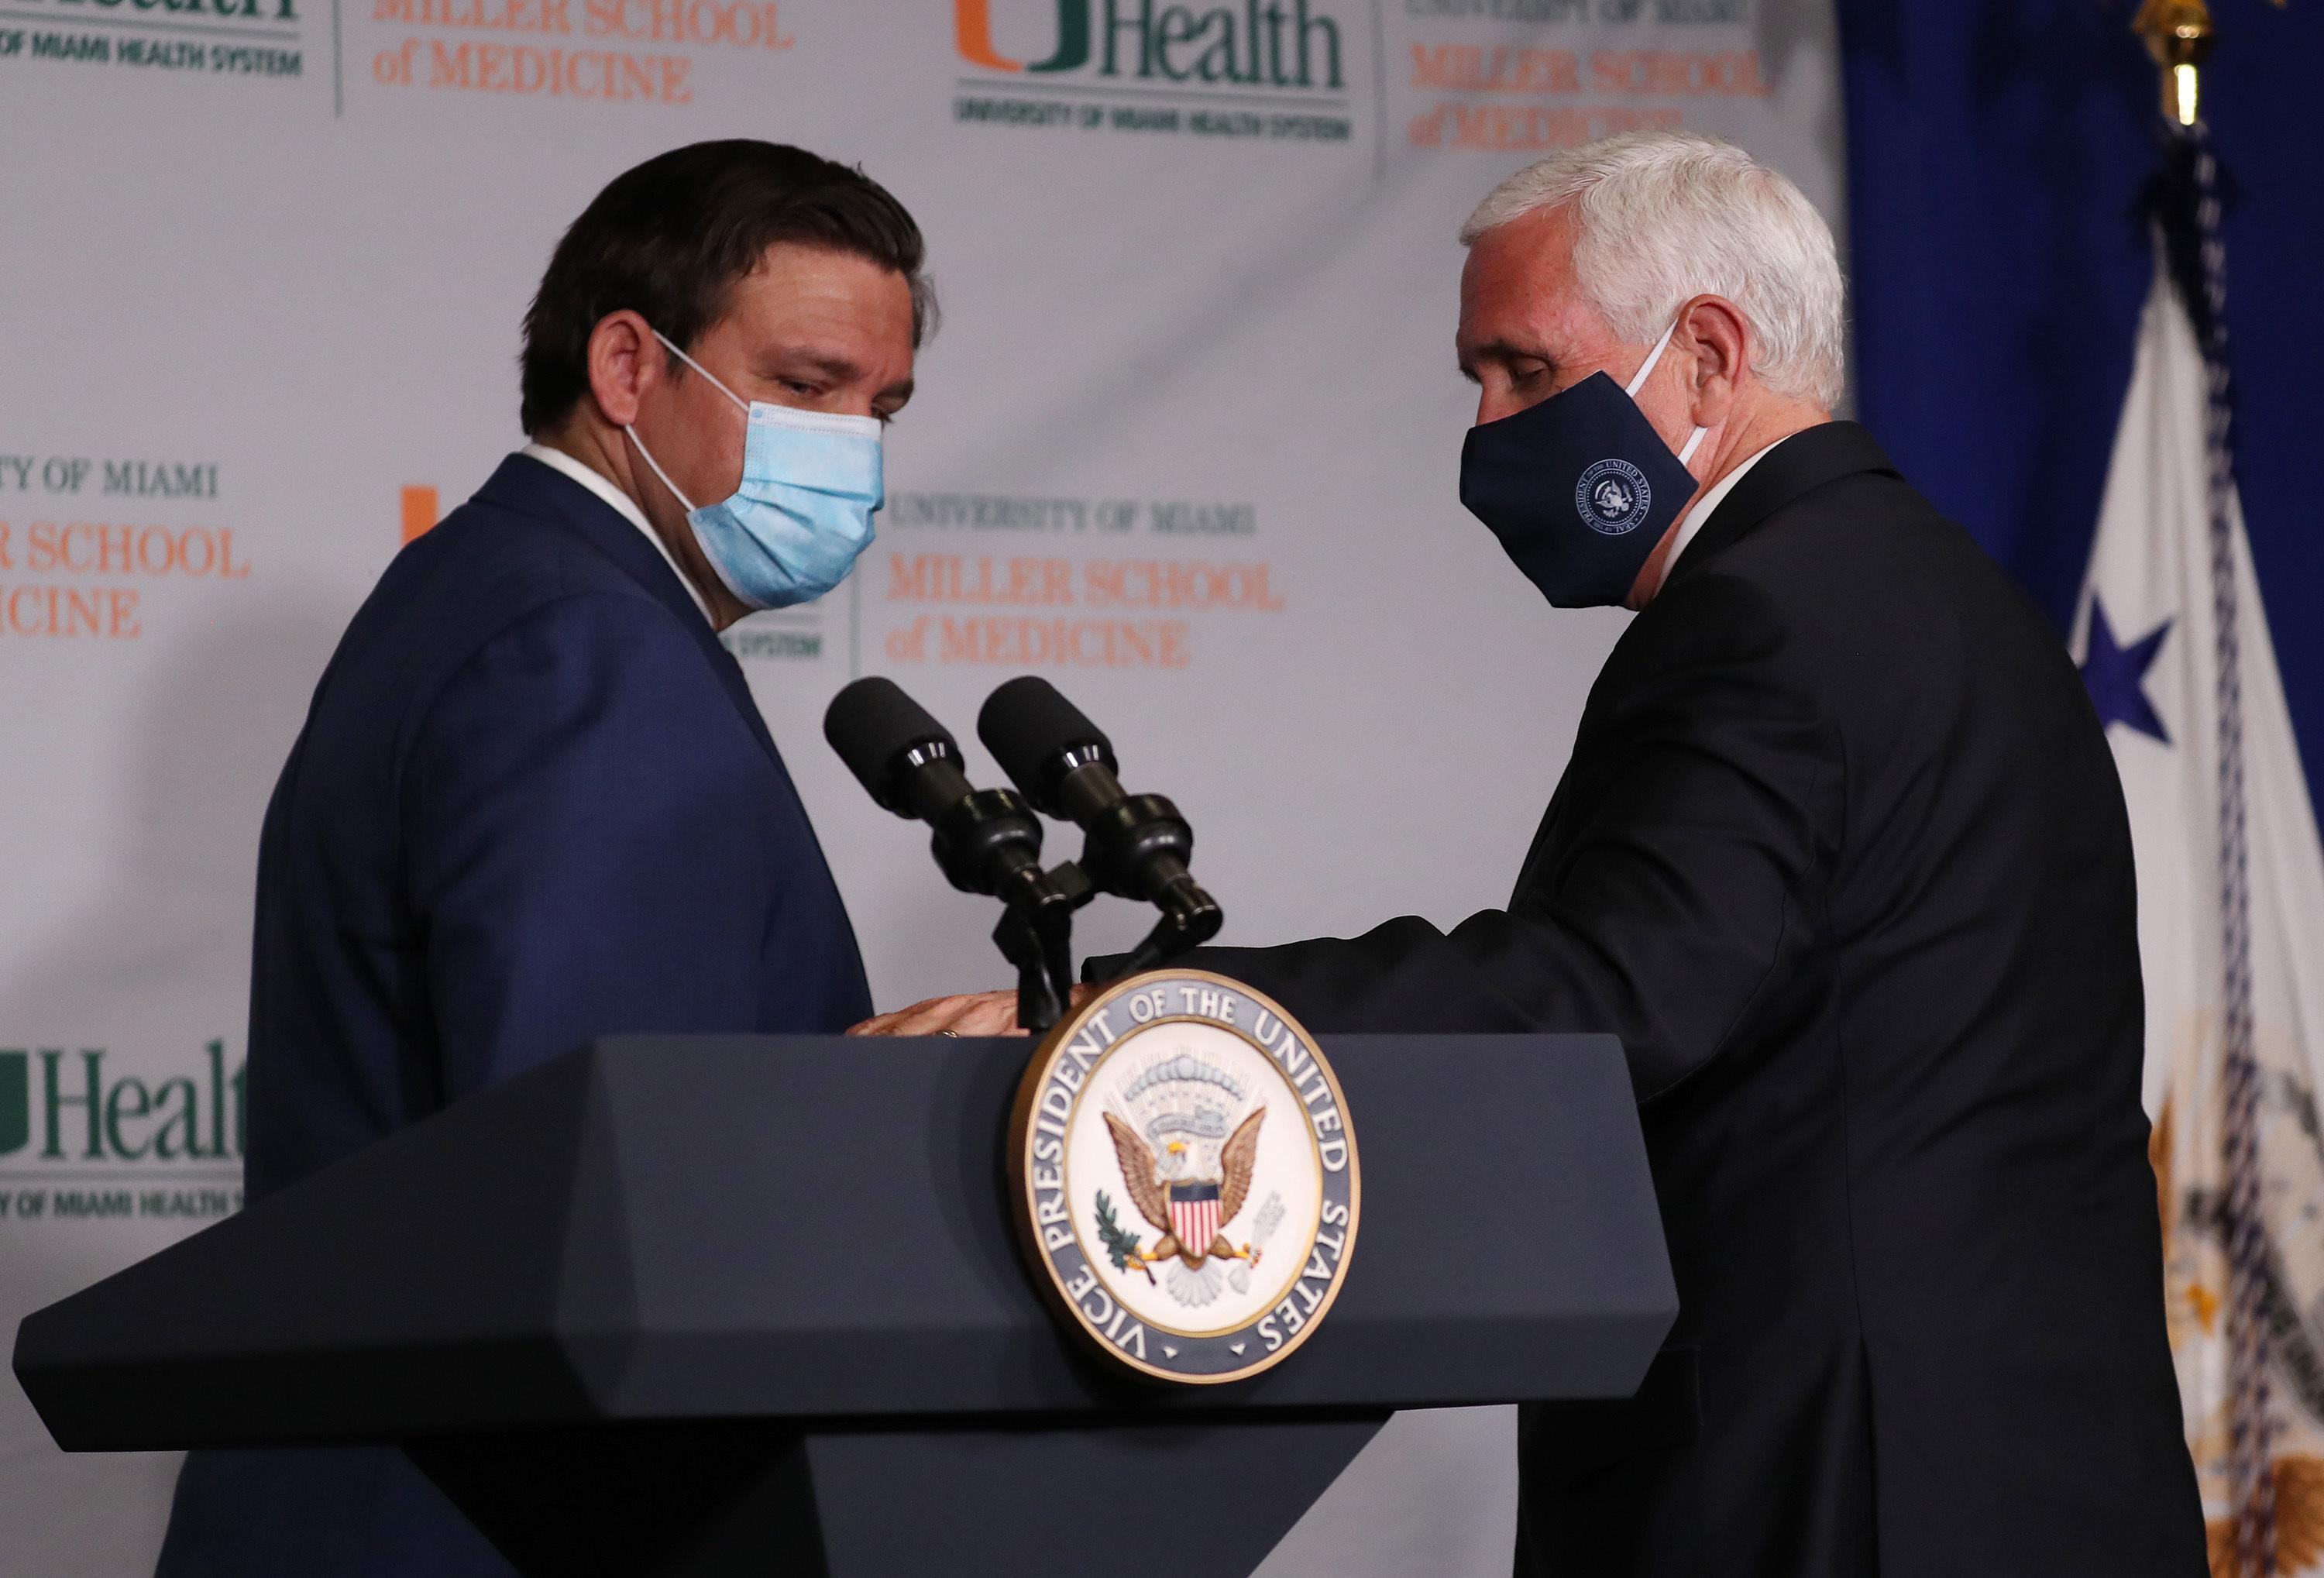 Vice President Pence urges participation in coronavirus vaccine trial